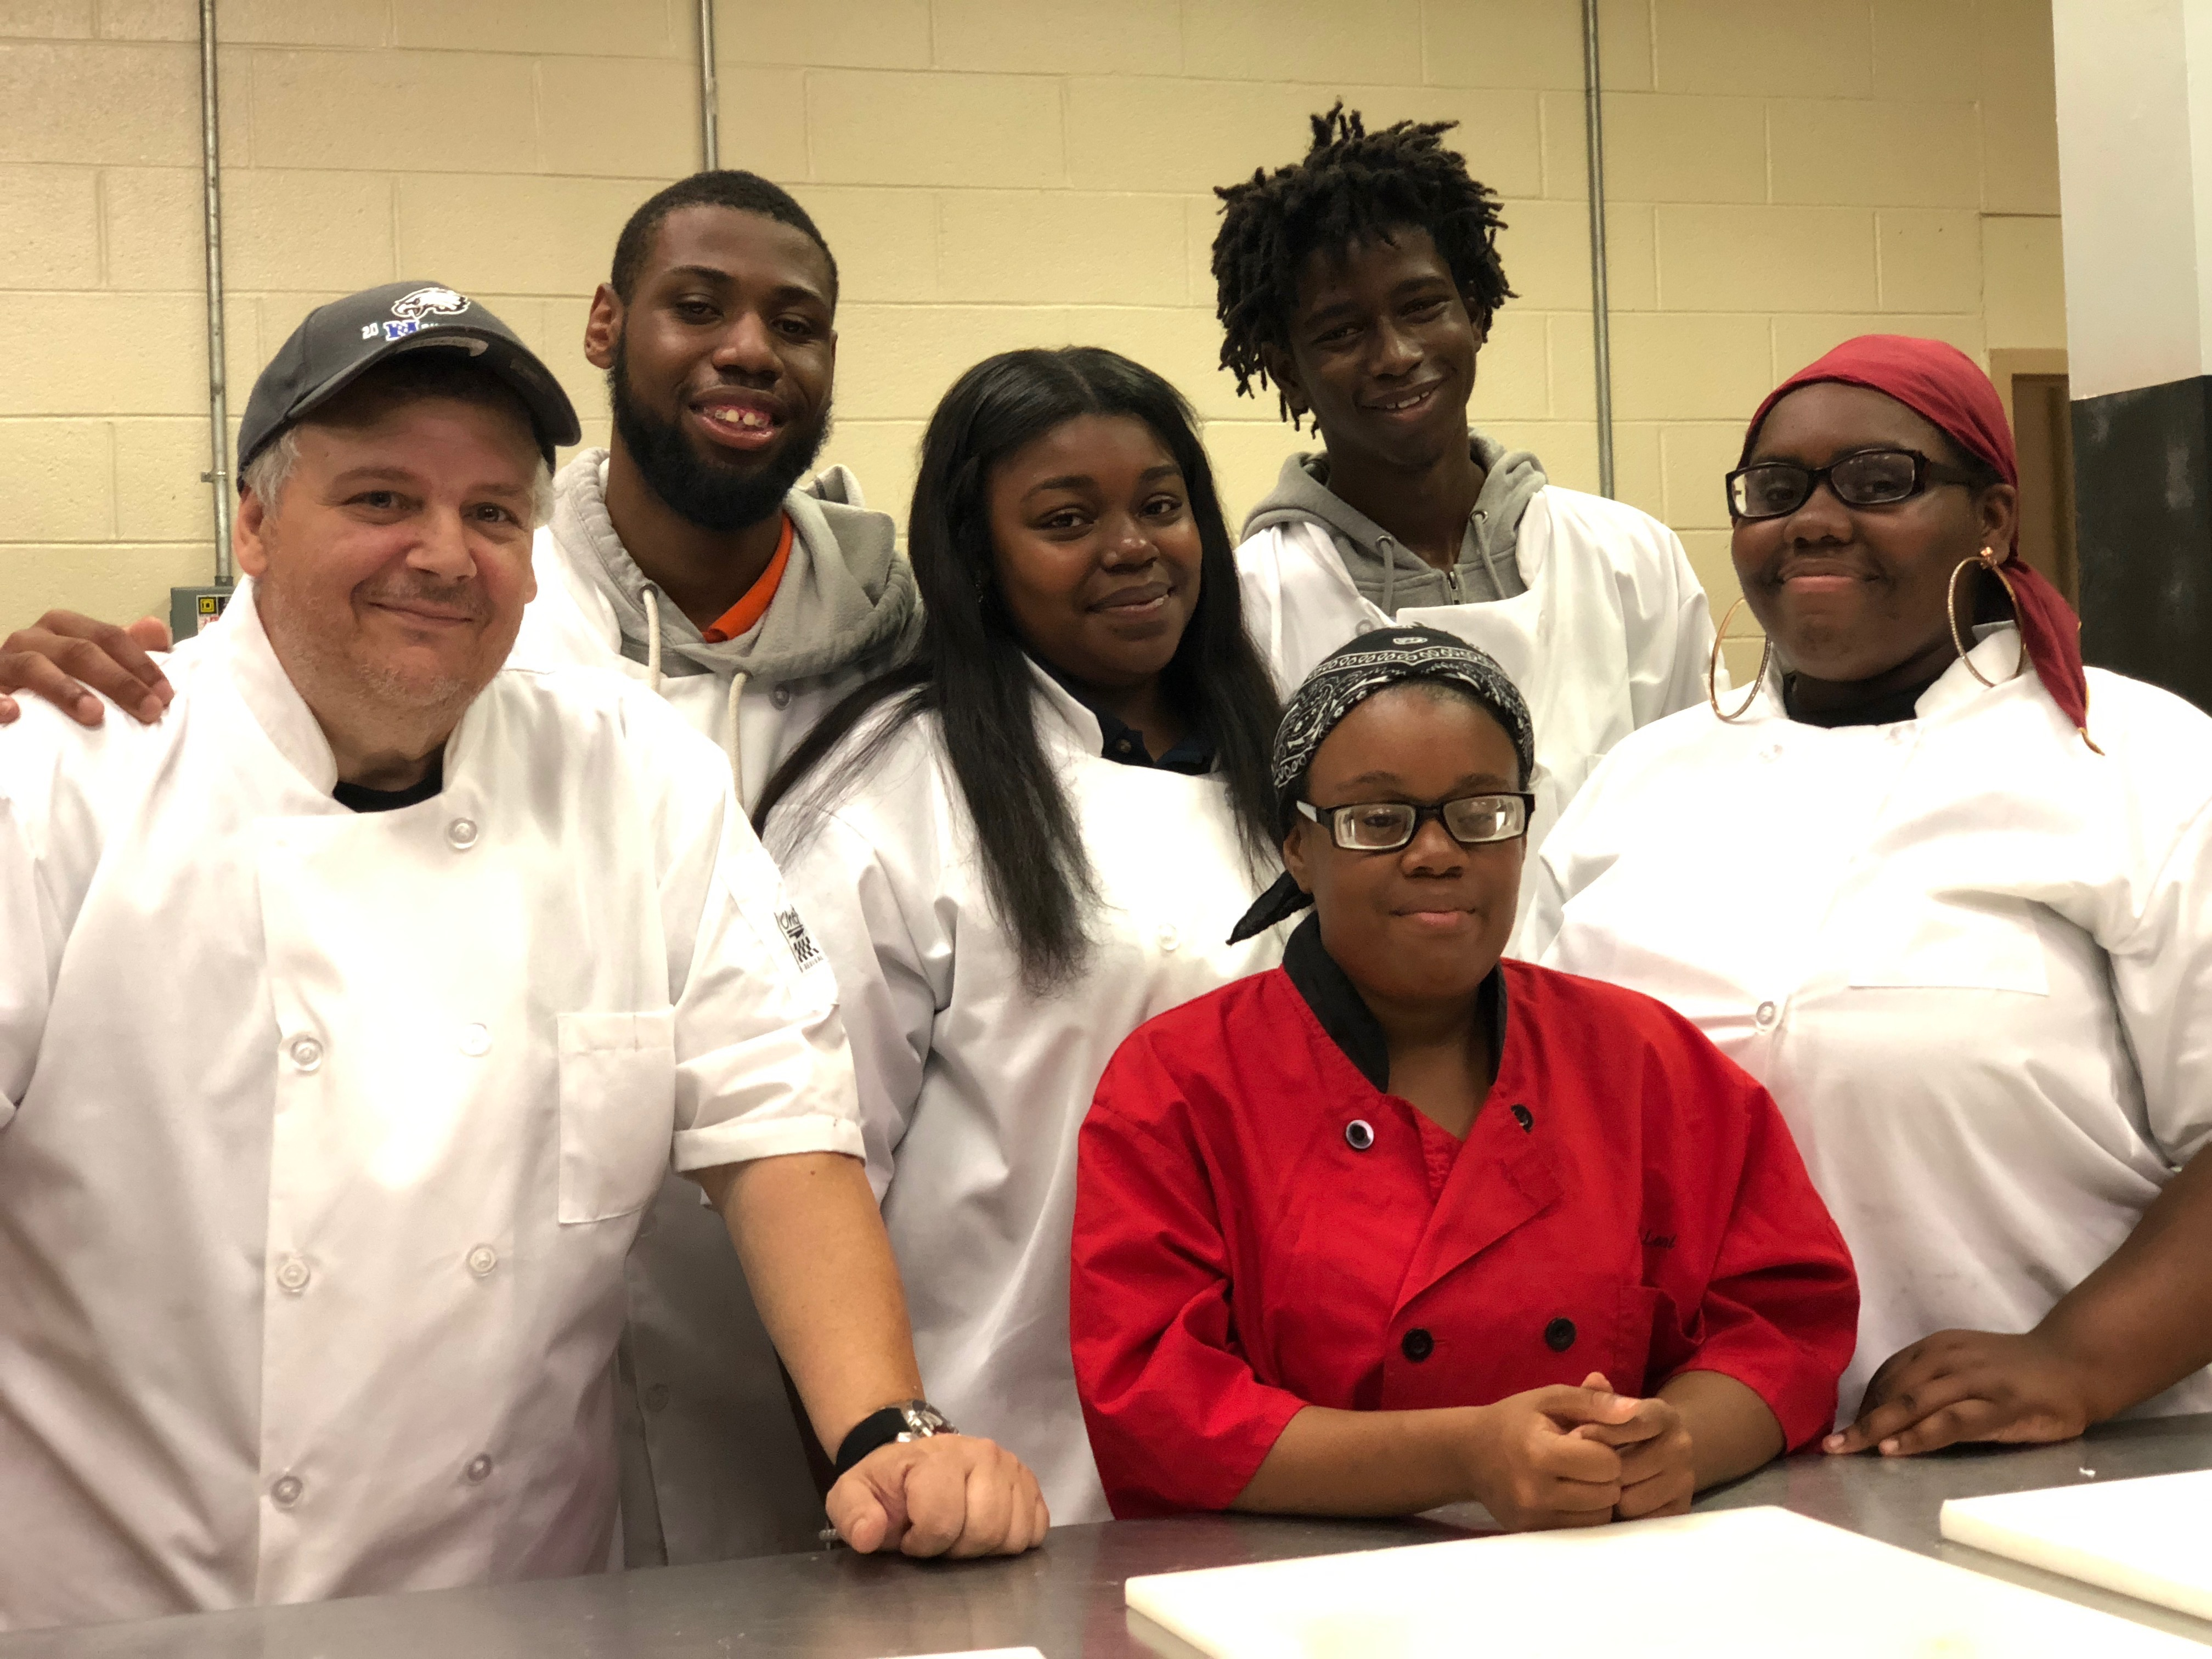 Chef Michael Bell with his culinary students.